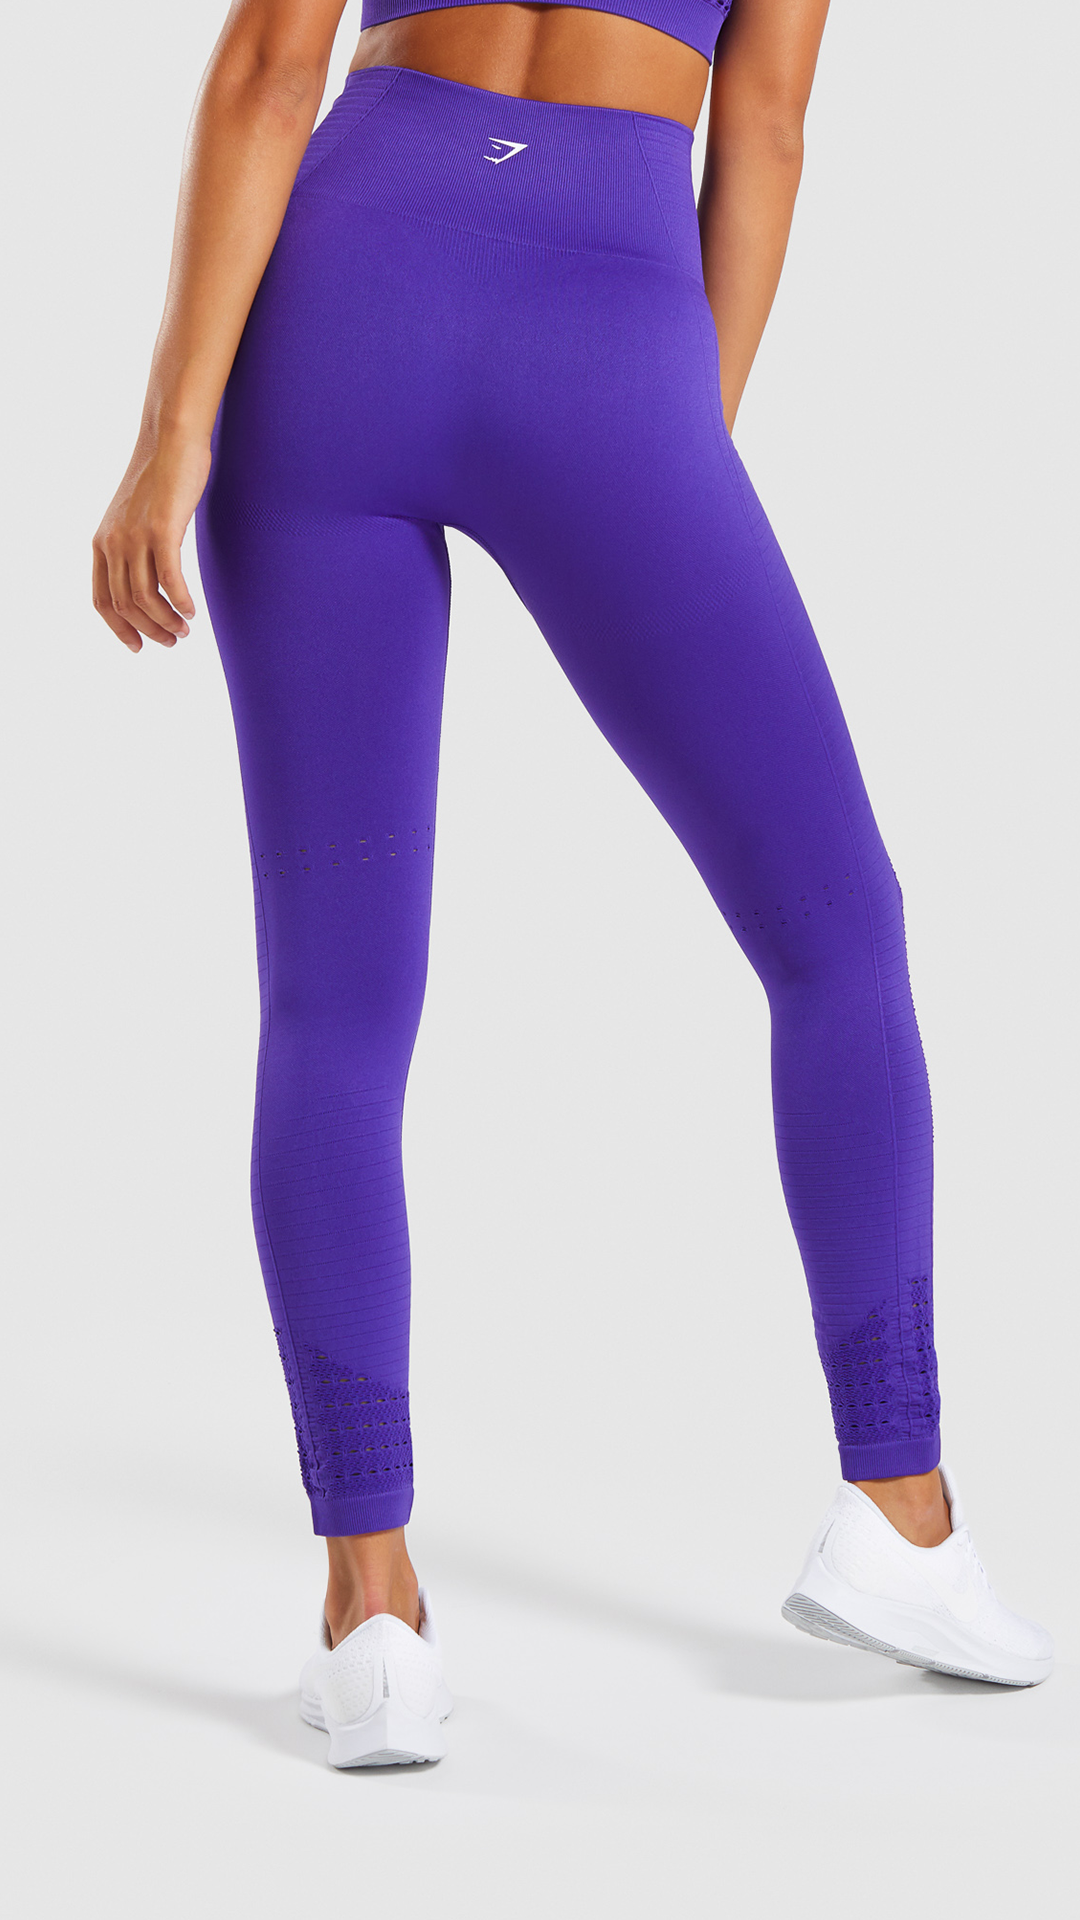 741555972b The Gymshark Energy Seamless Leggings.  Gymshark  Gym  Sweat  Train   Perform  Seamless  Exercise  Strength  Strong  Power  Fitness   OutfitInspiration